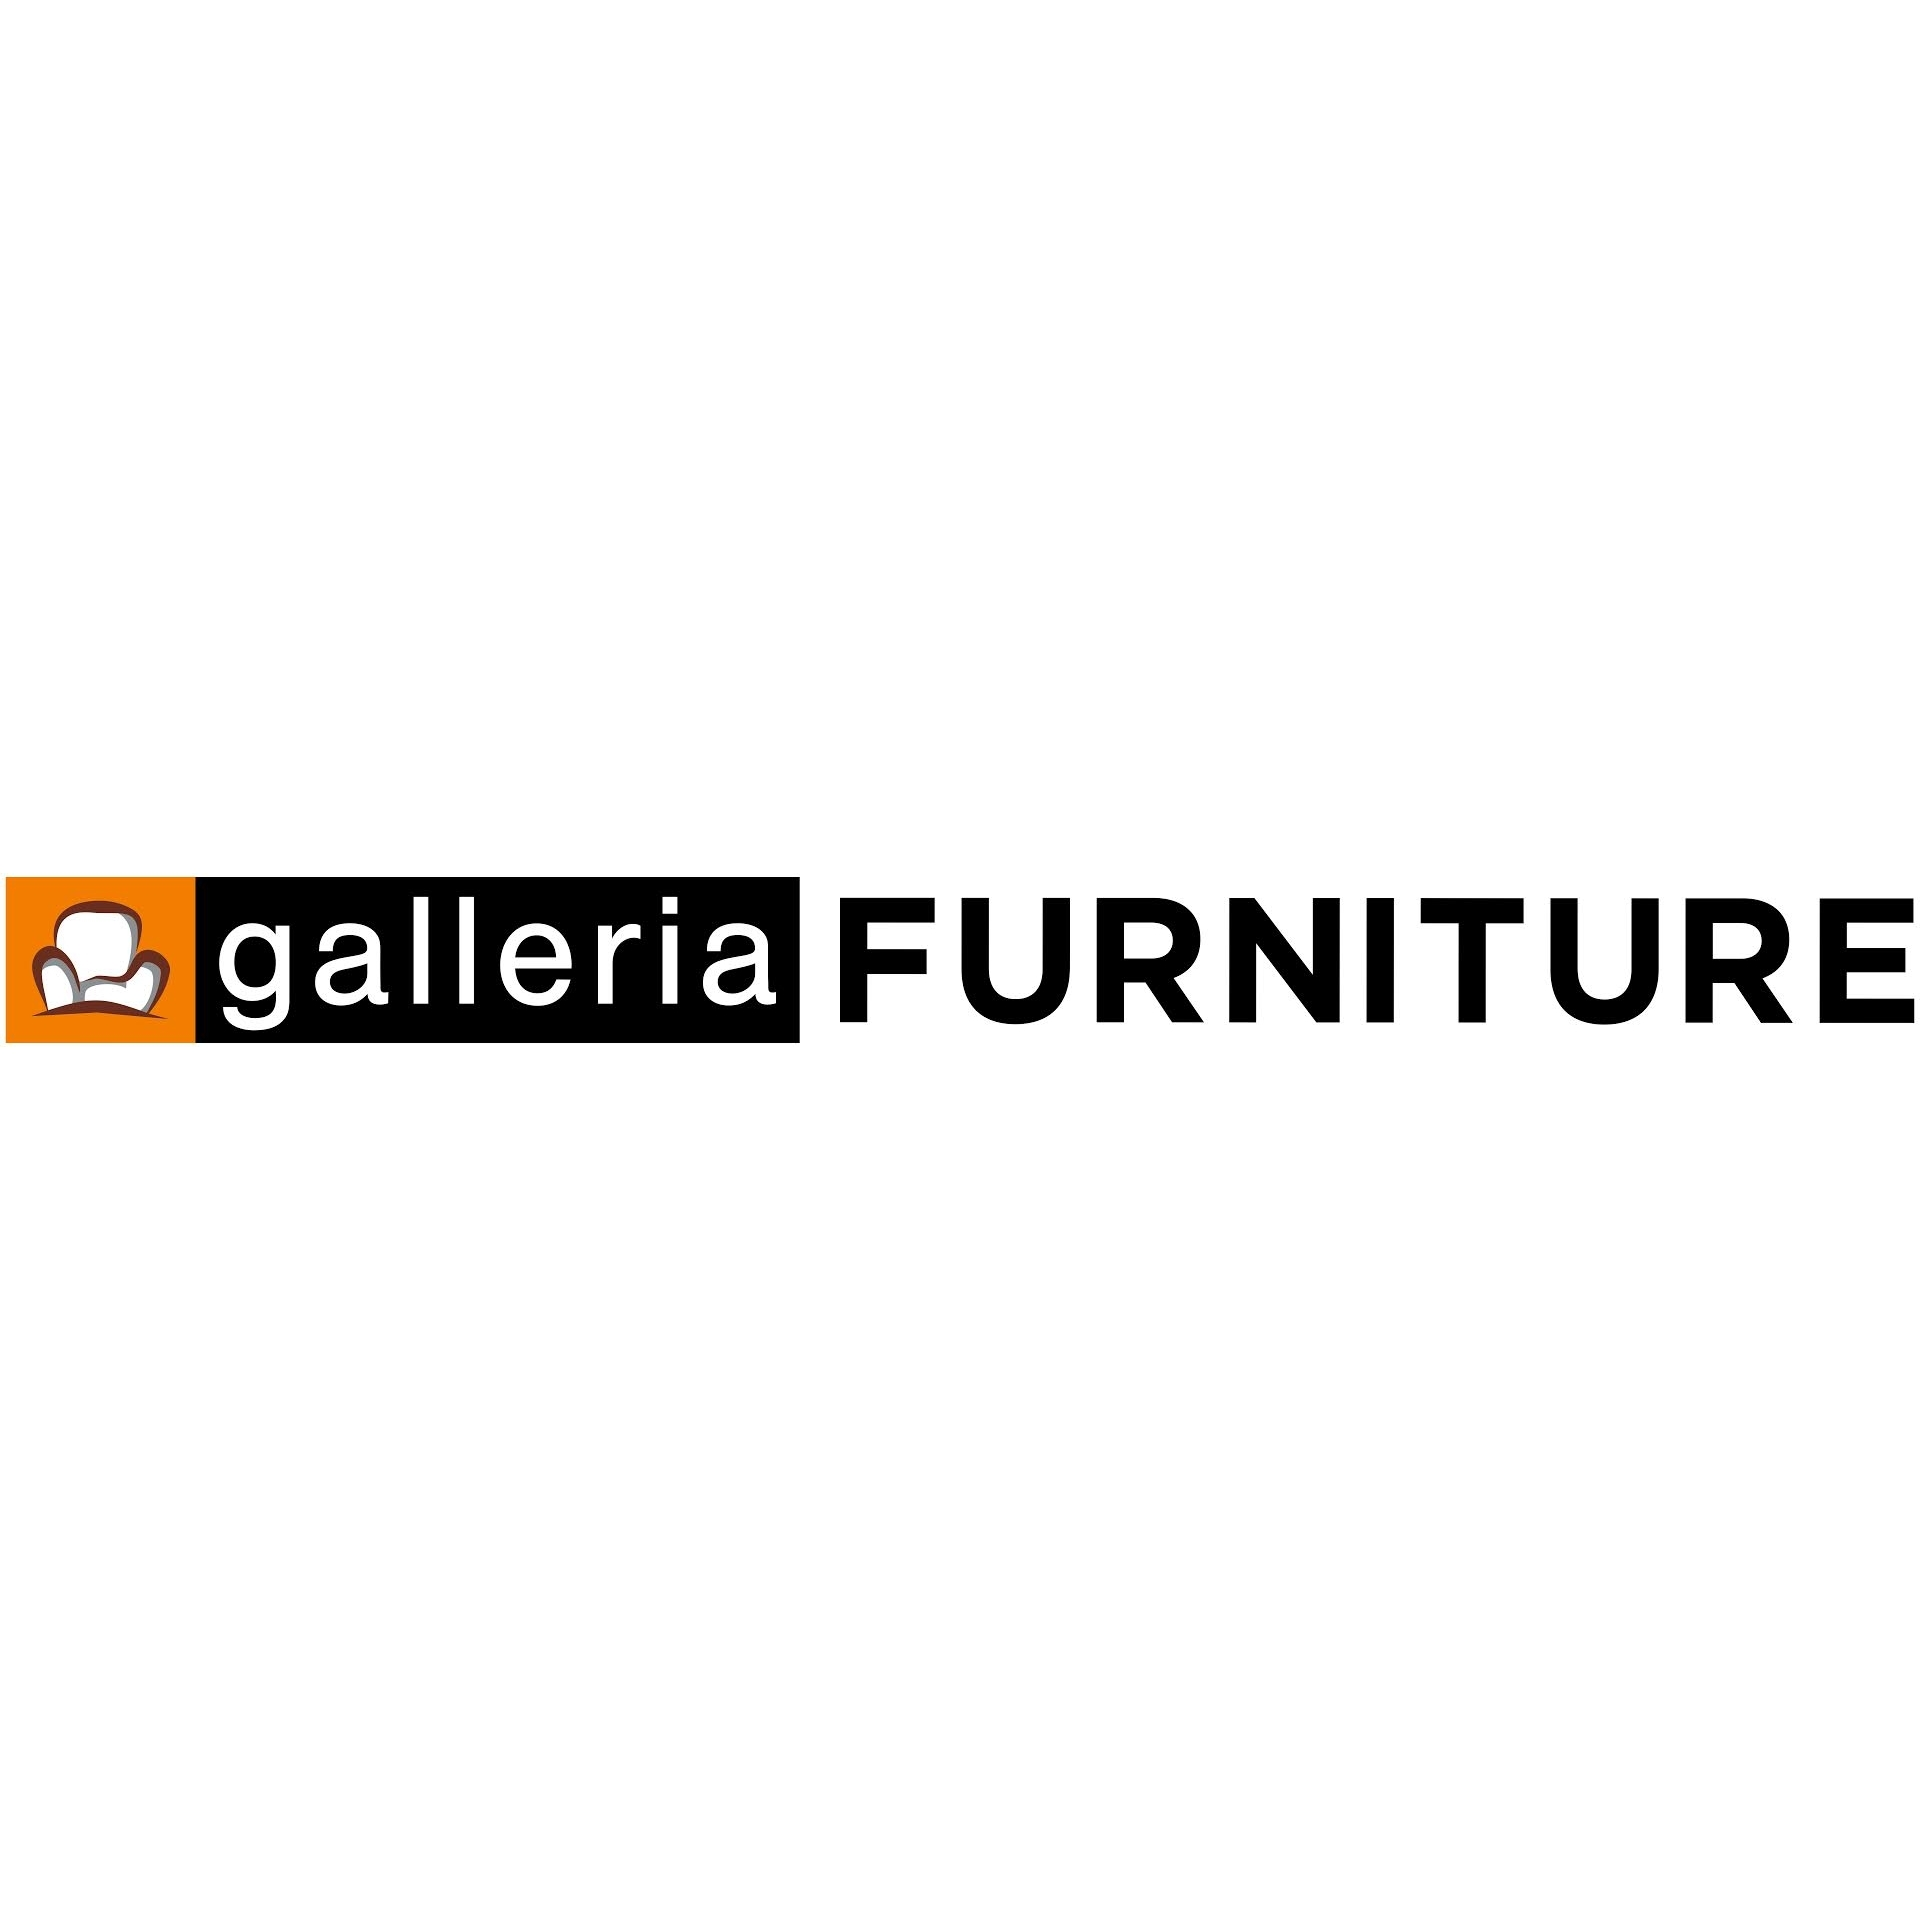 Galleria Furniture